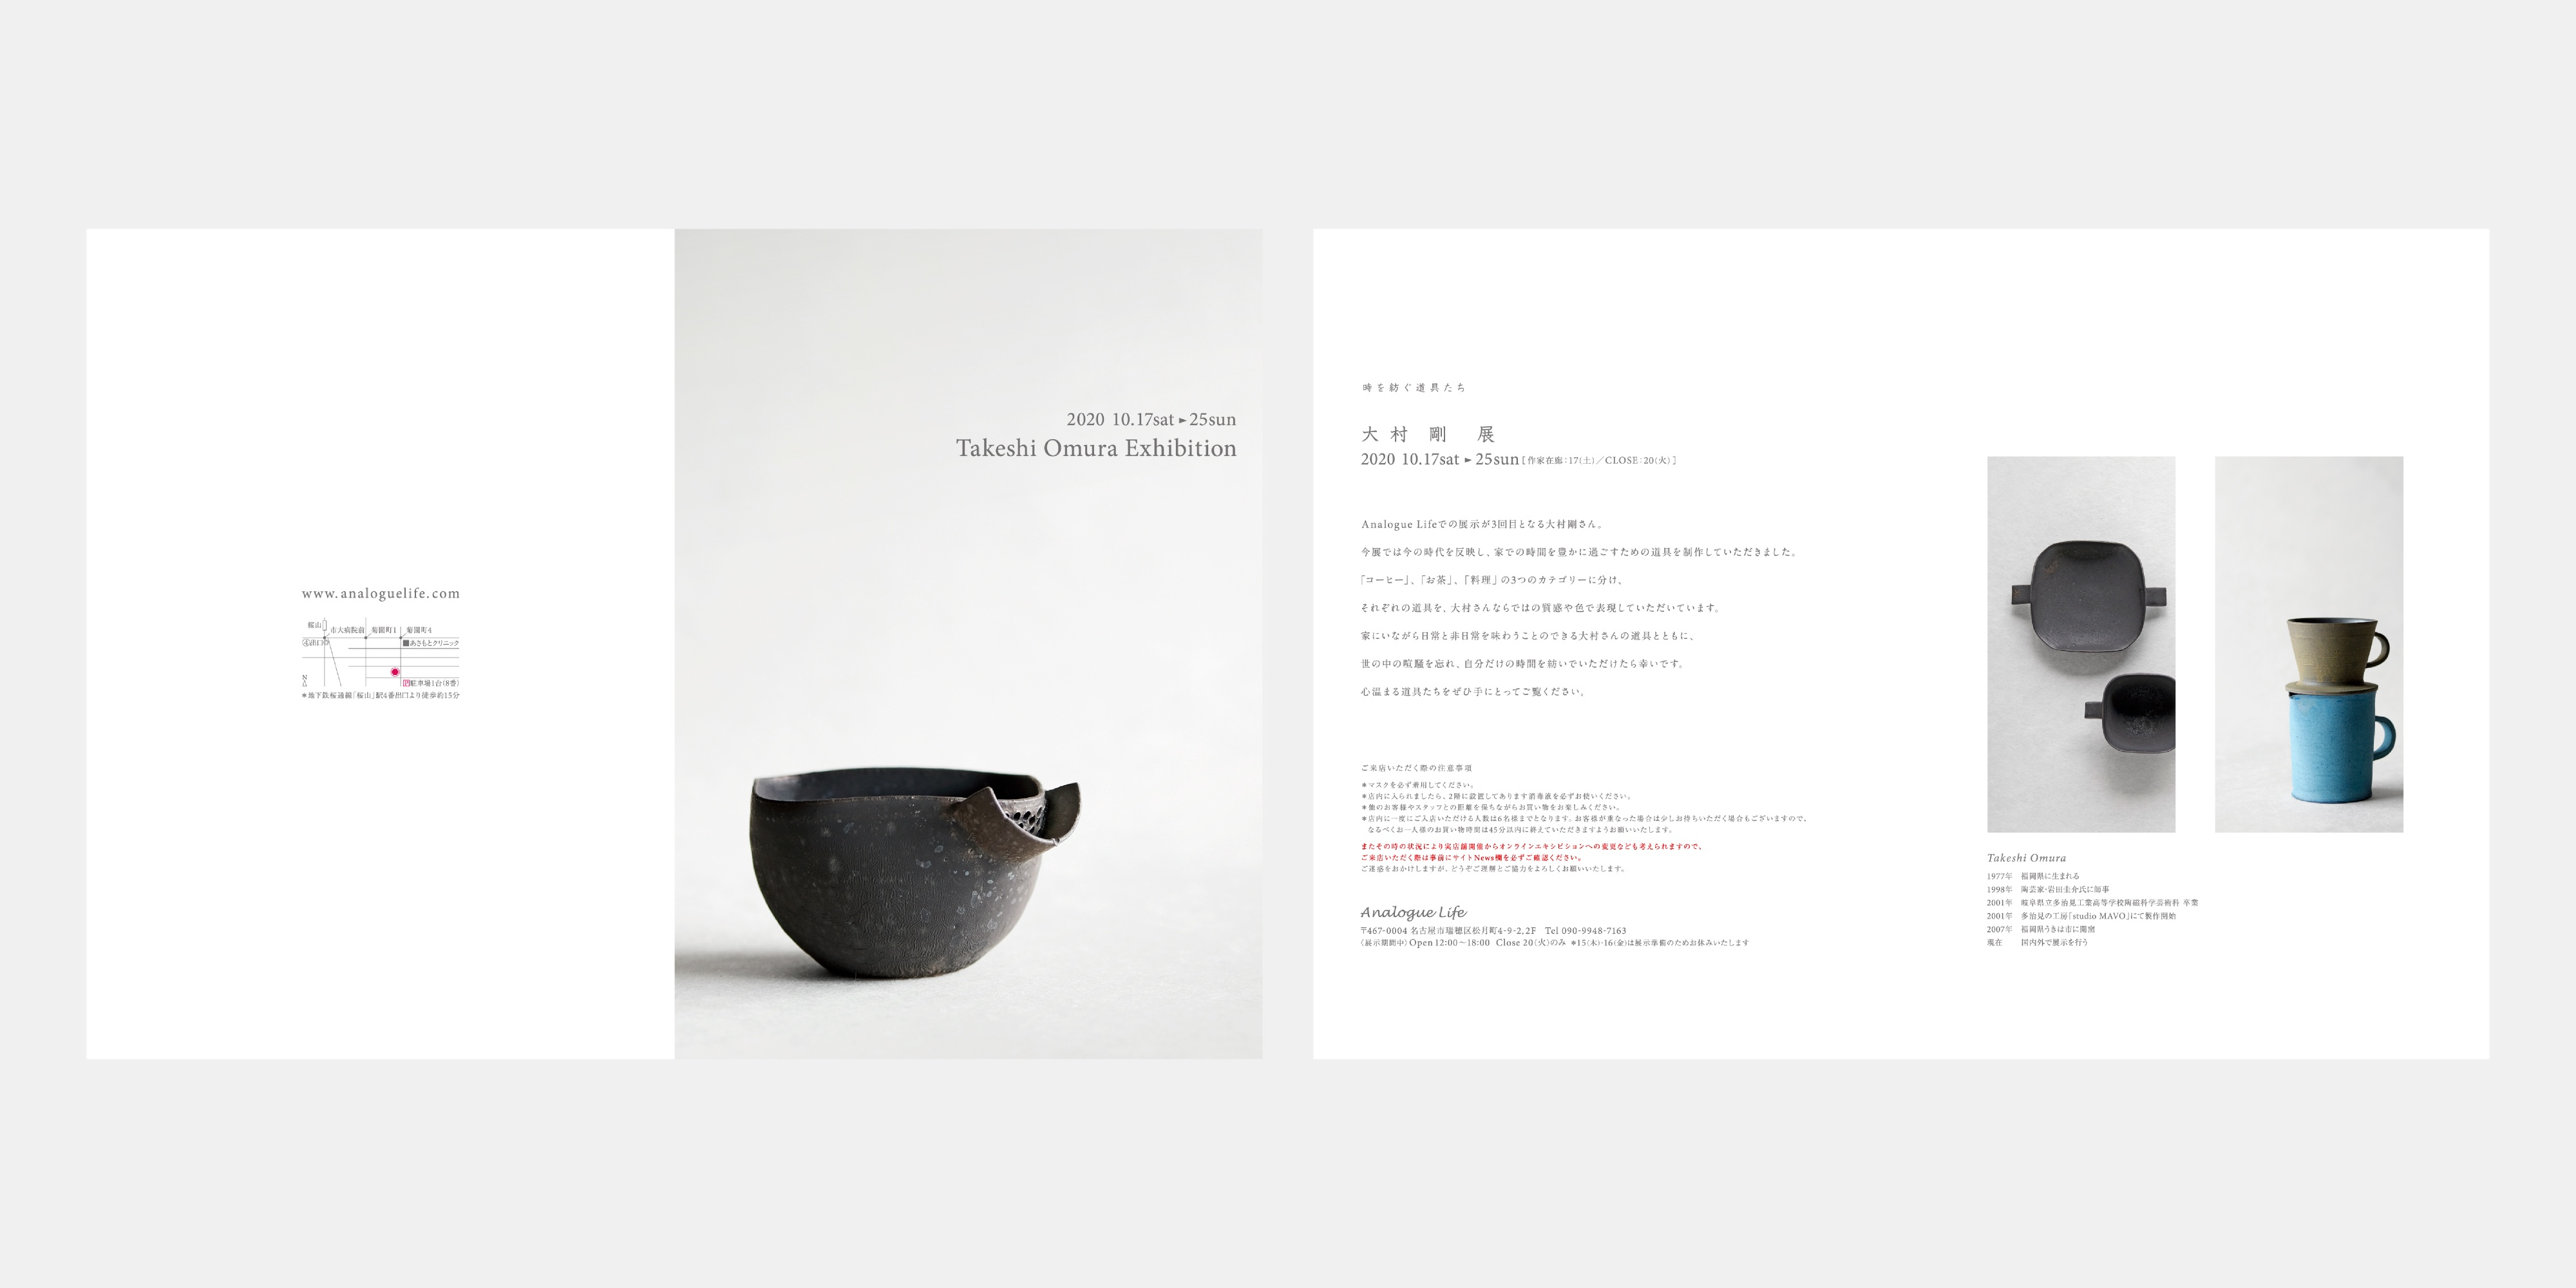 Takeshi Omura Exhibition